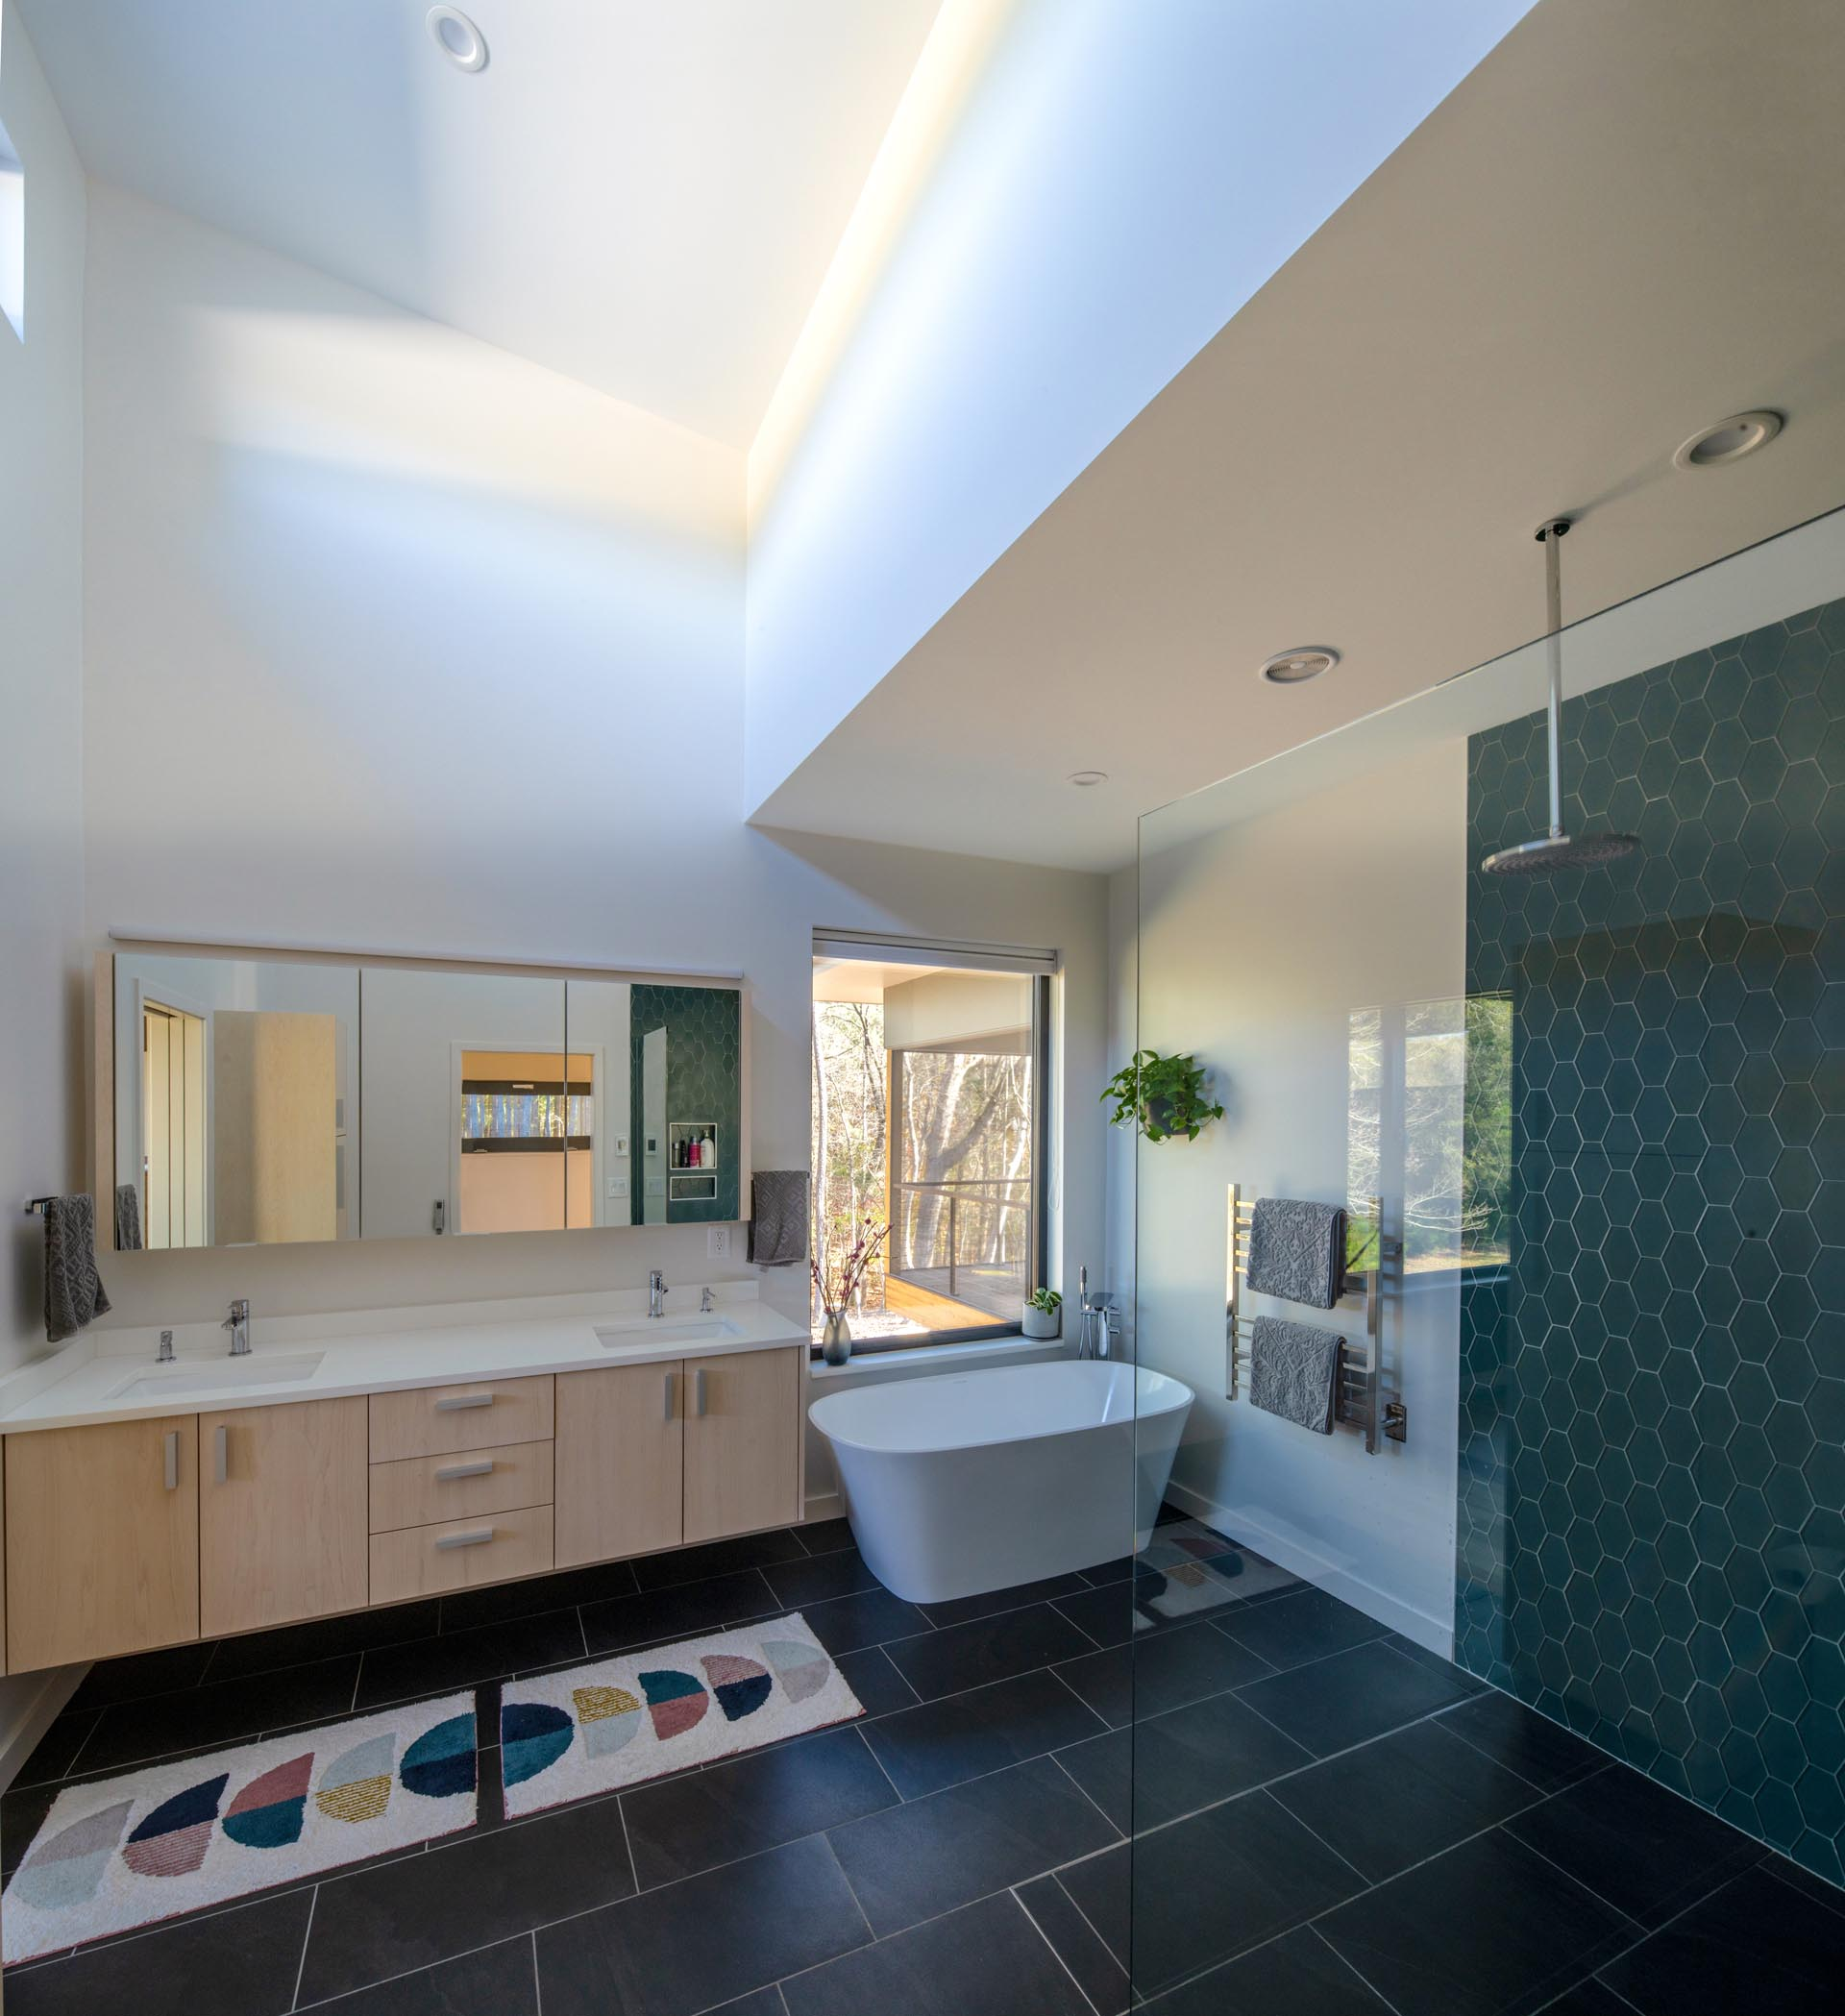 This spa-like master bathroom has high ceiling, black floor tiles, a dual sink vanity, a deep soaking tub, and a shower with a hexagonal tile accent wall.